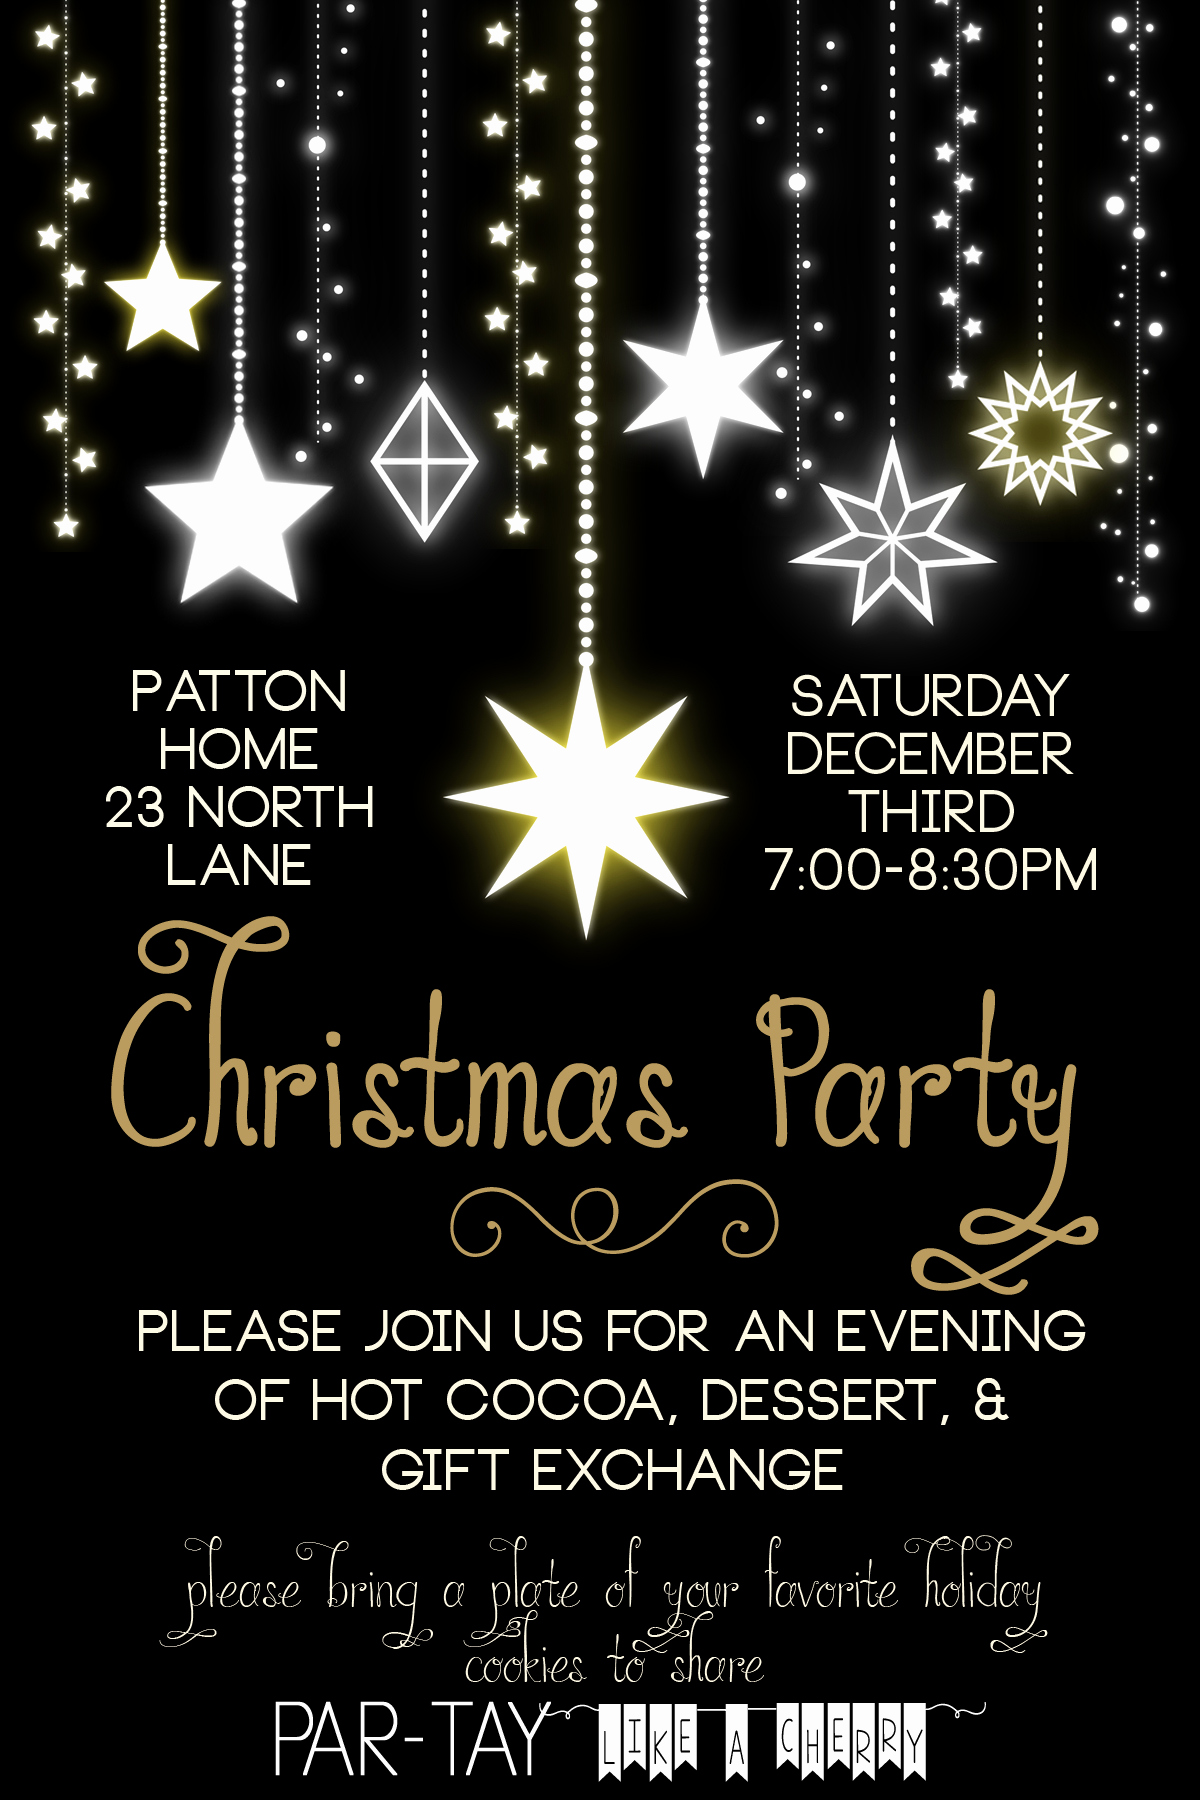 Free Christmas Party Invitation Templates Elegant Free Christmas Party Invitation Party Like A Cherry